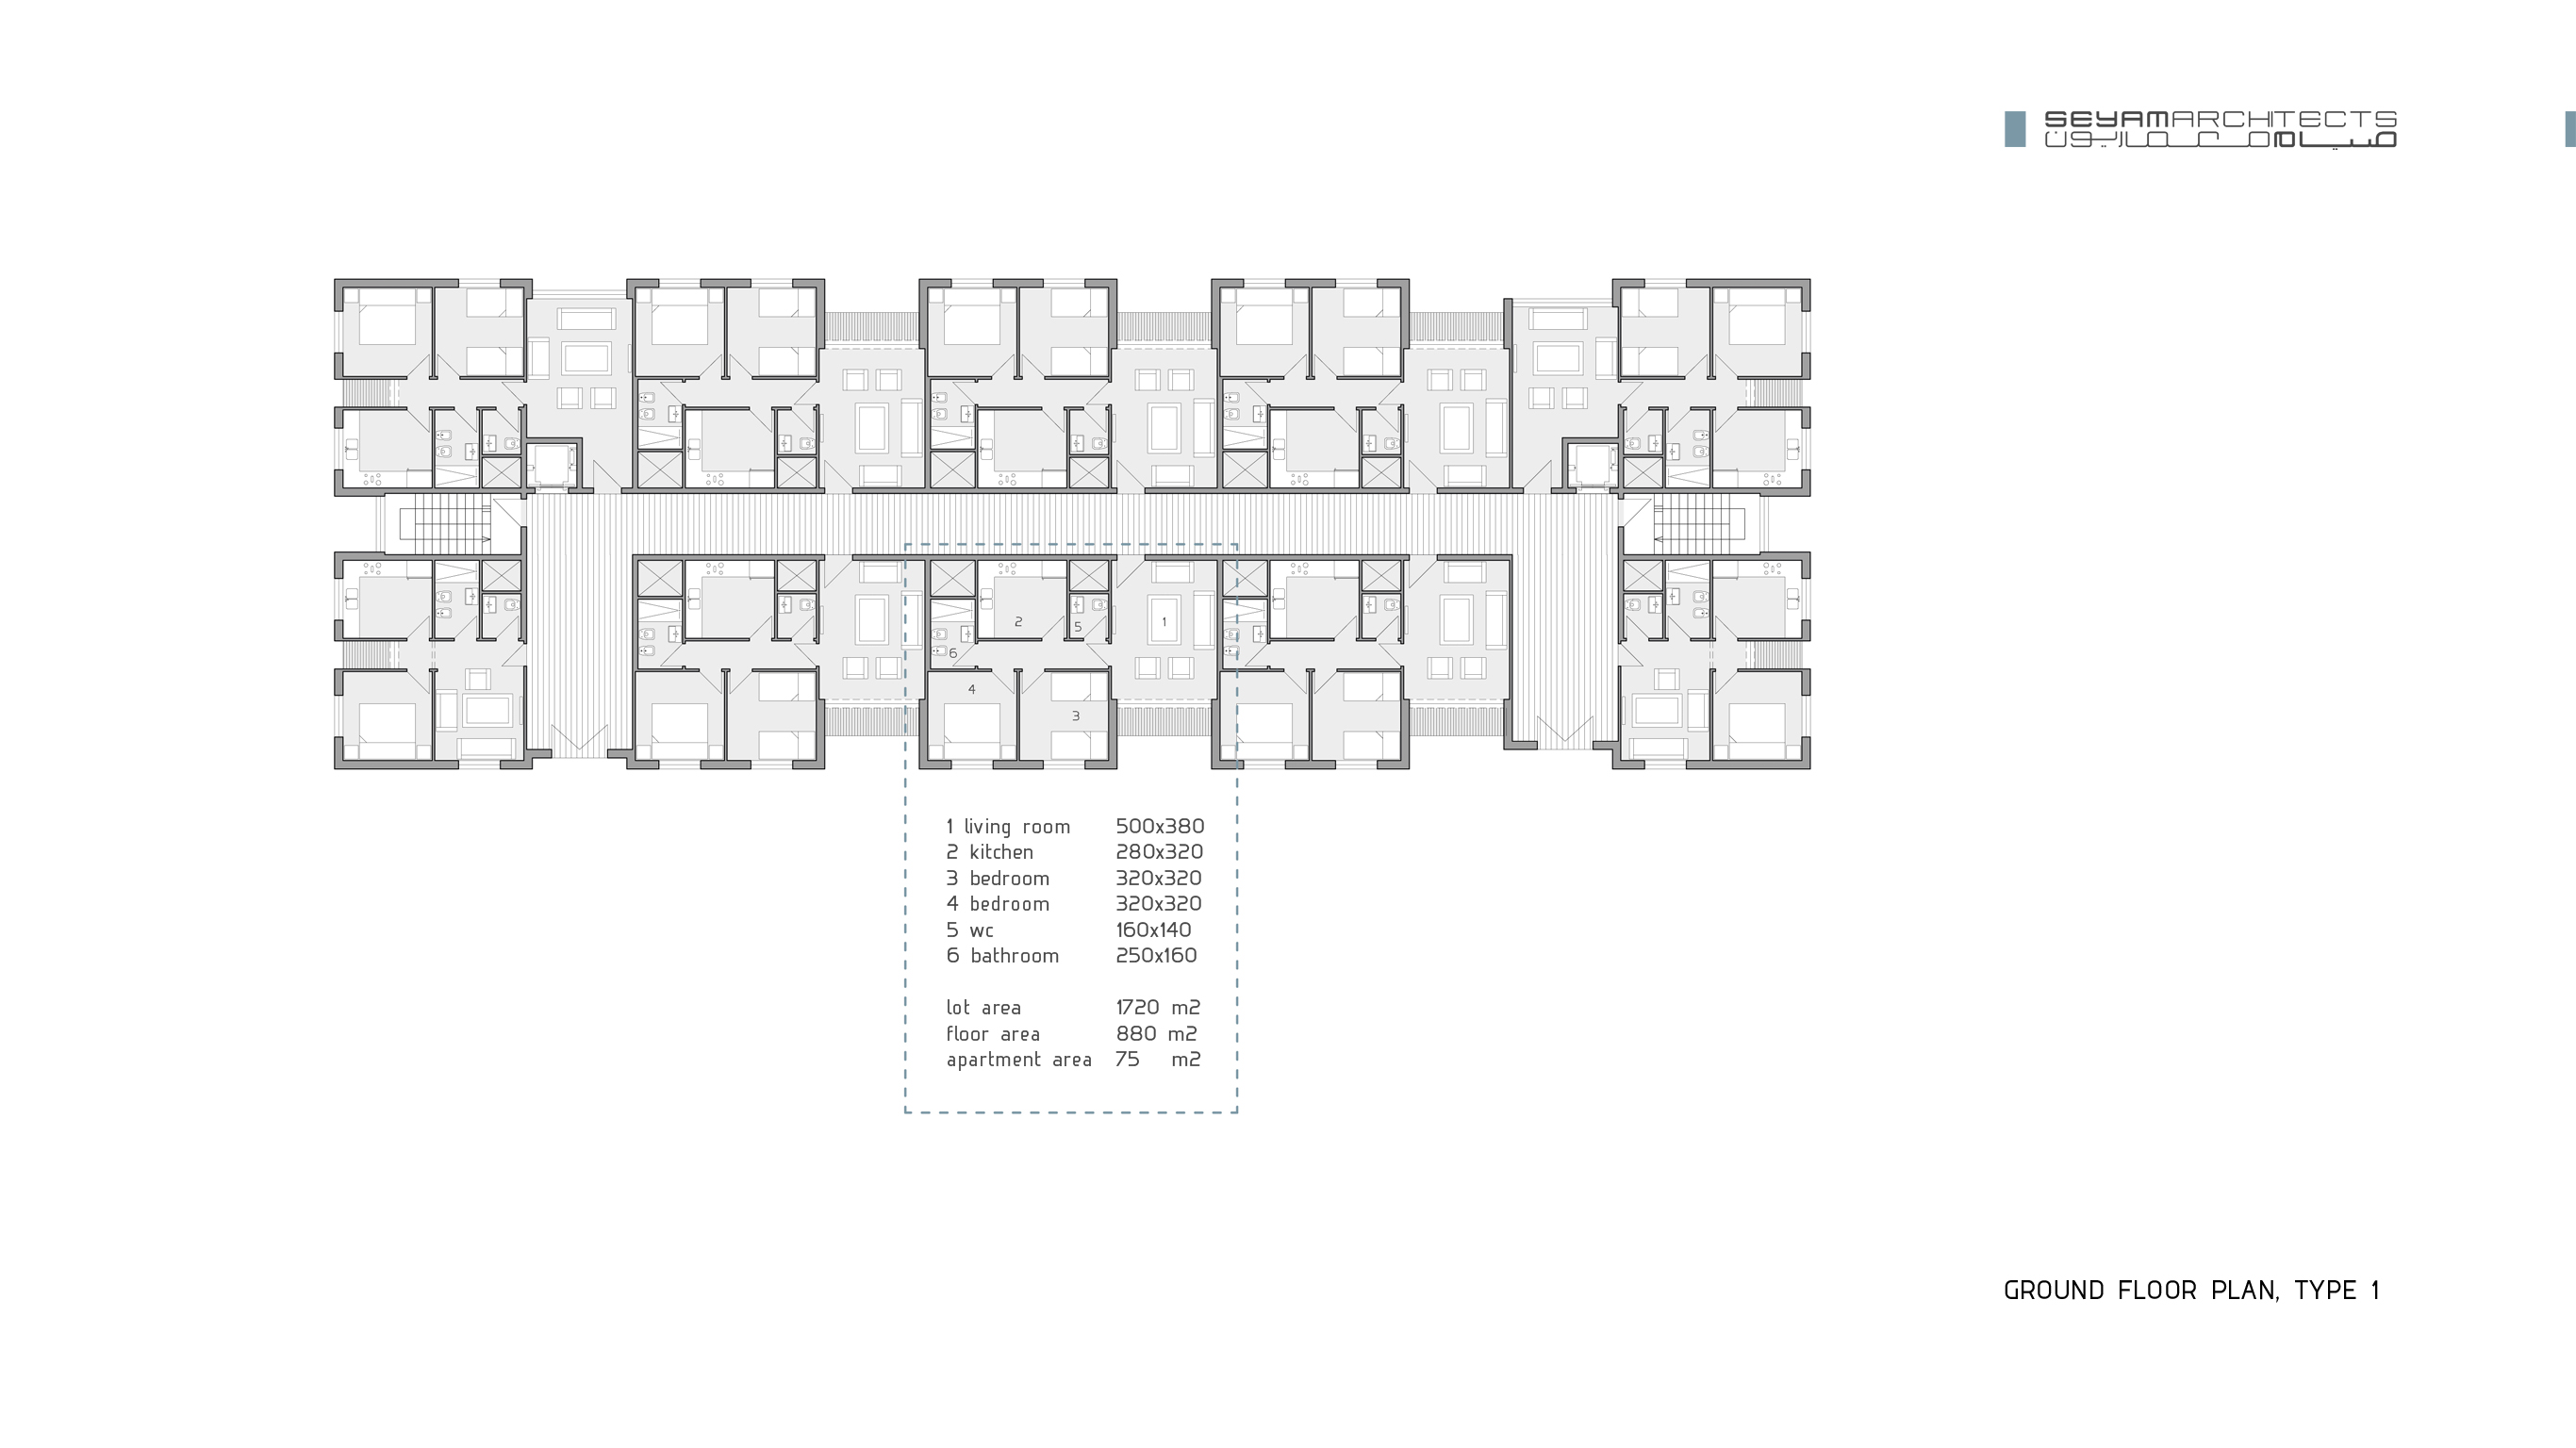 07 ground floor plan, type 1